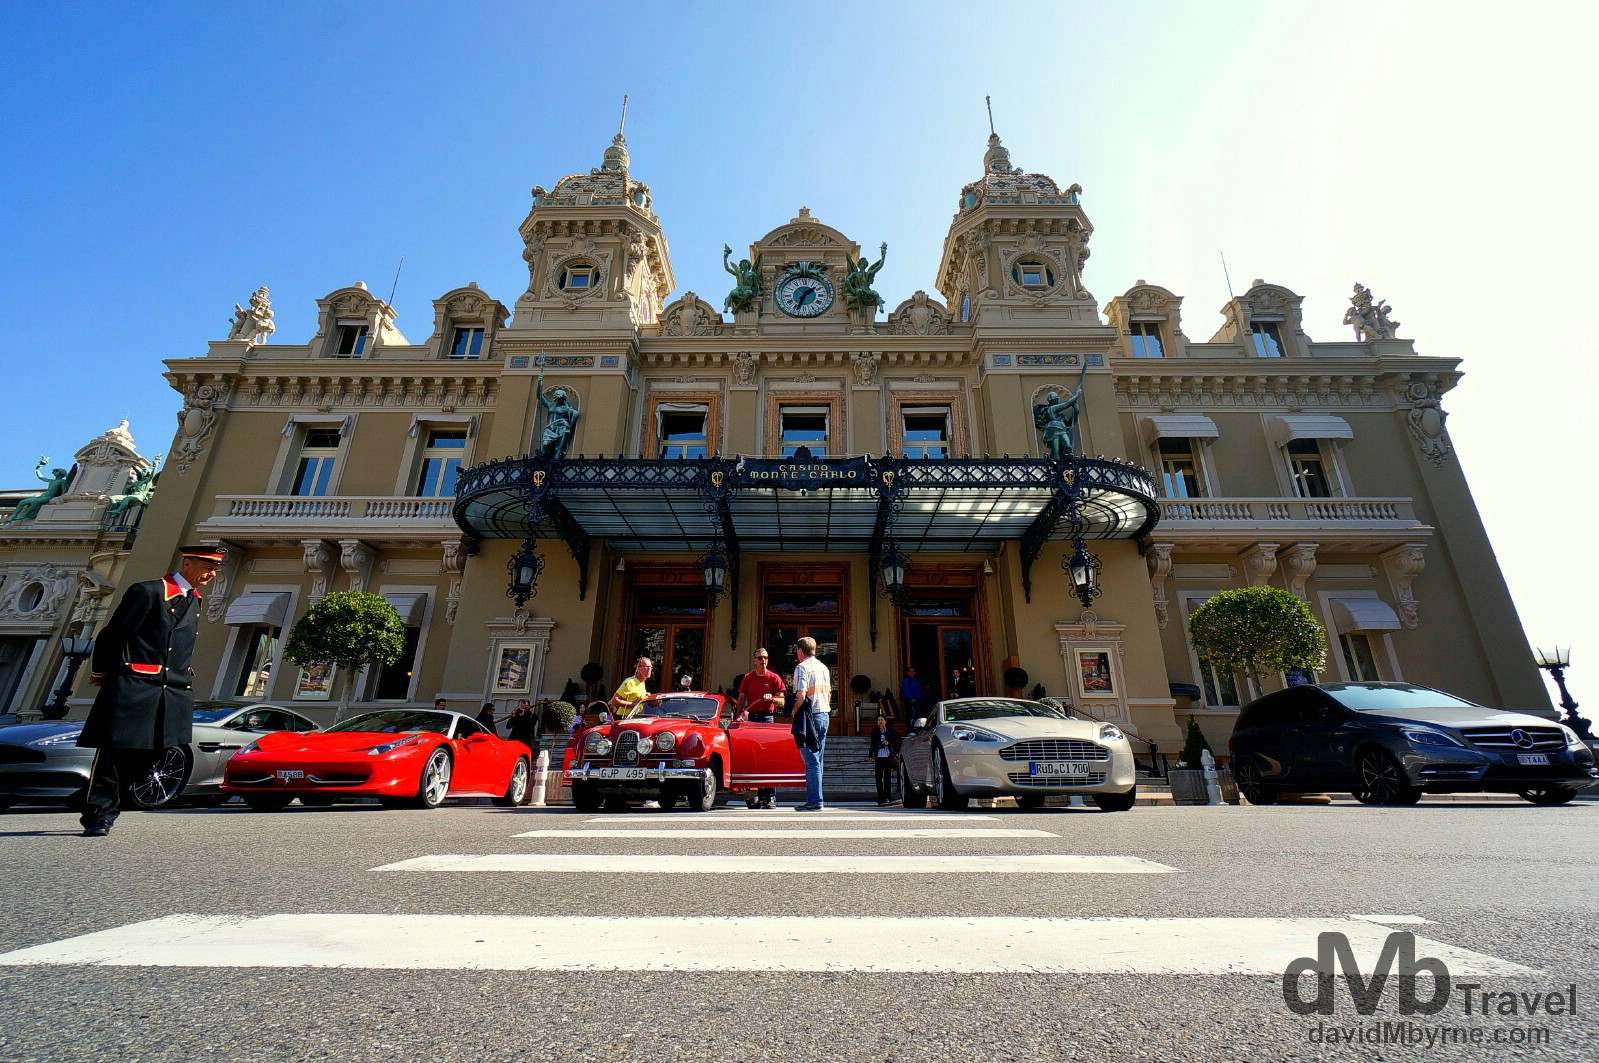 The Monte-Carlo Casino, Monaco. March 14th, 2014.